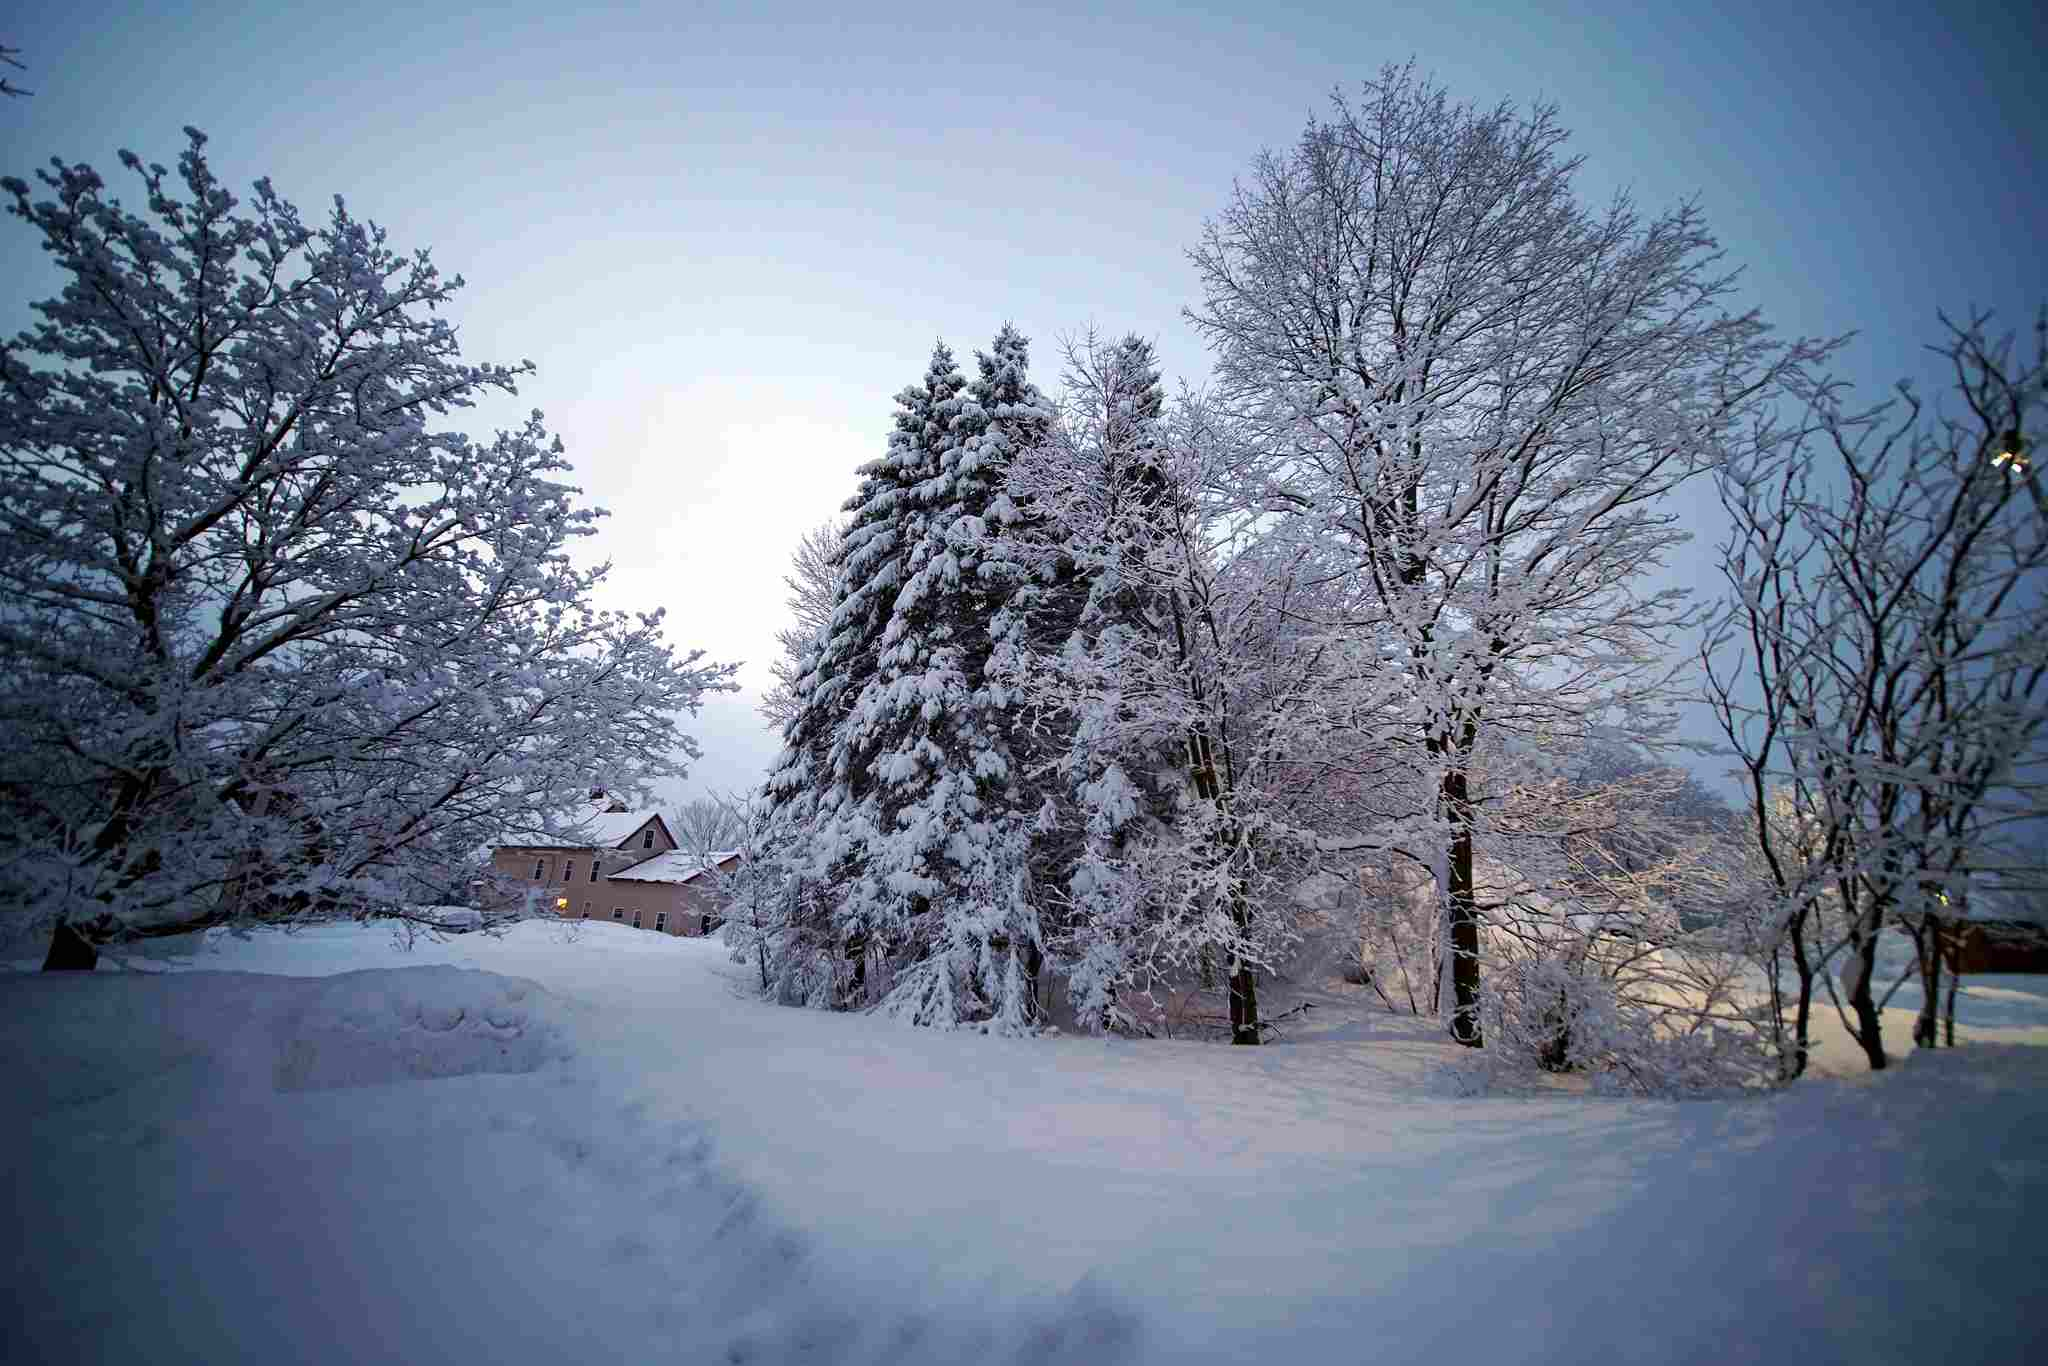 White Christmas Snow.Where To Celebrate A White Christmas In New England